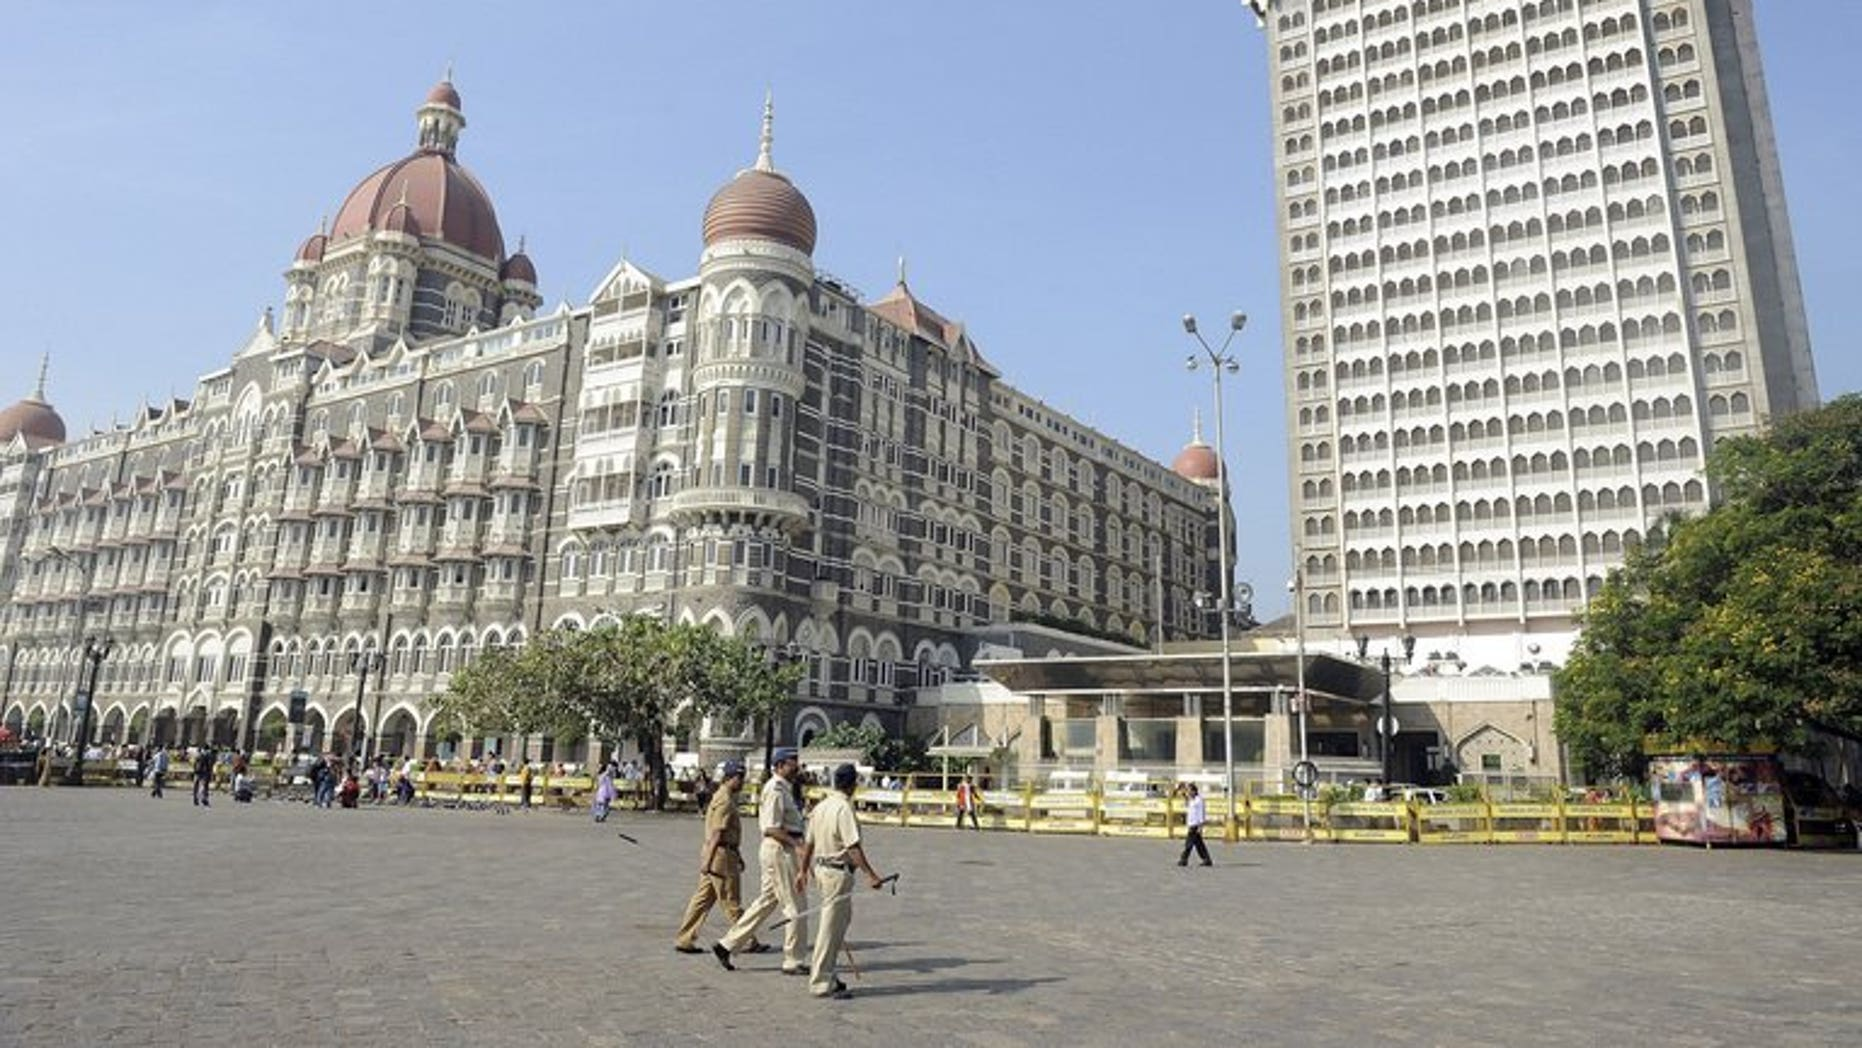 Indian policemen patrol in Mumbai on November 26, 2011. Indian investigators seized more than 100 bags stuffed with cash, gold and diamond jewellery during a raid on four trucks in Mumbai, marking one of the city's largest such hauls, reports and officials said Wednesday.